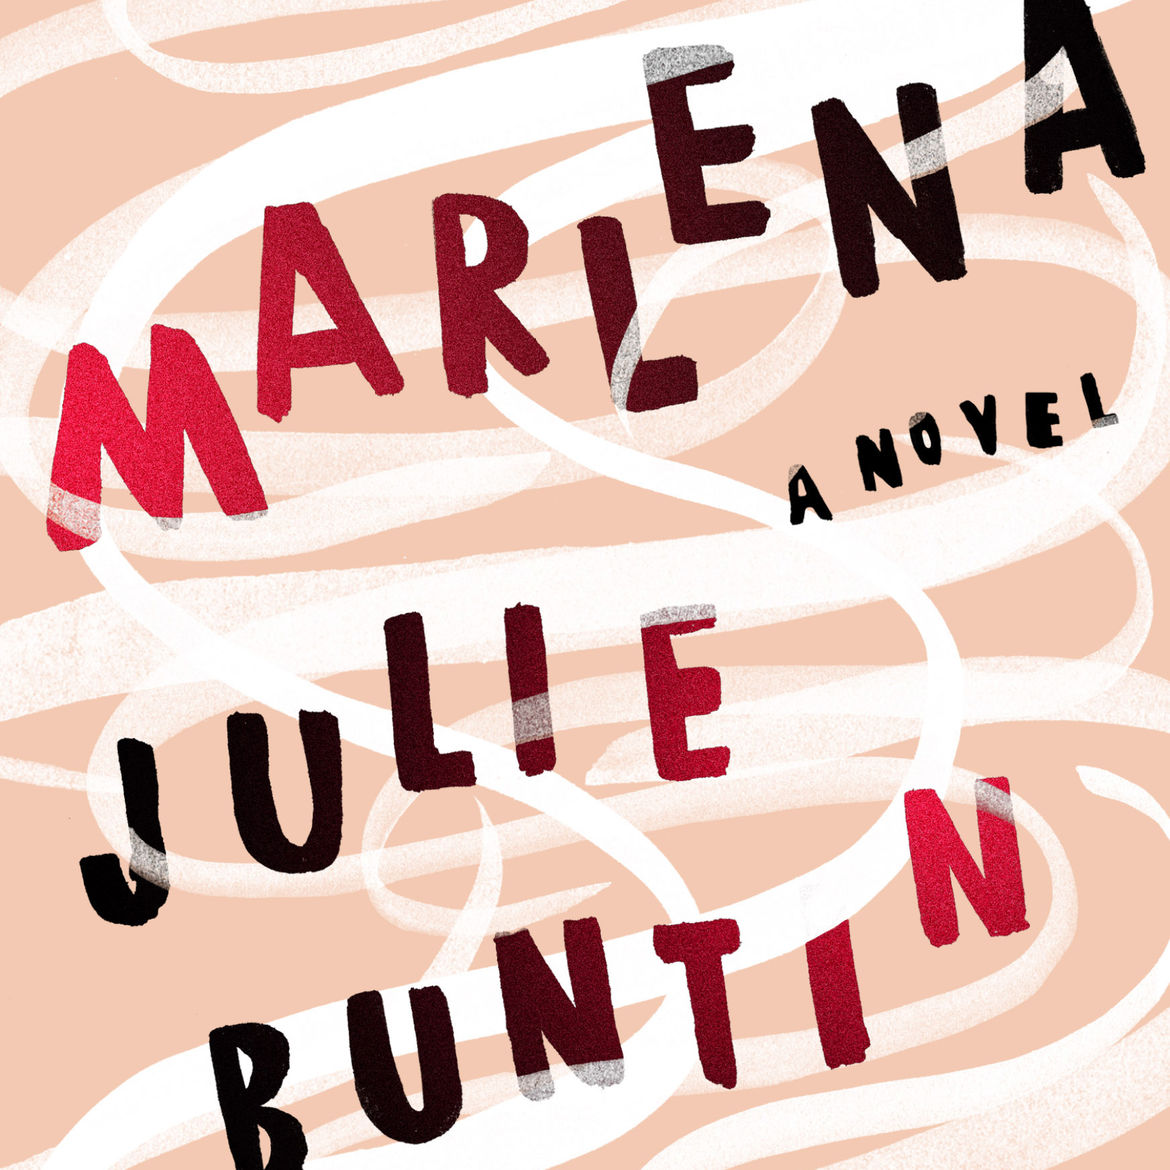 Cover Photo: detail of MARLENA cover